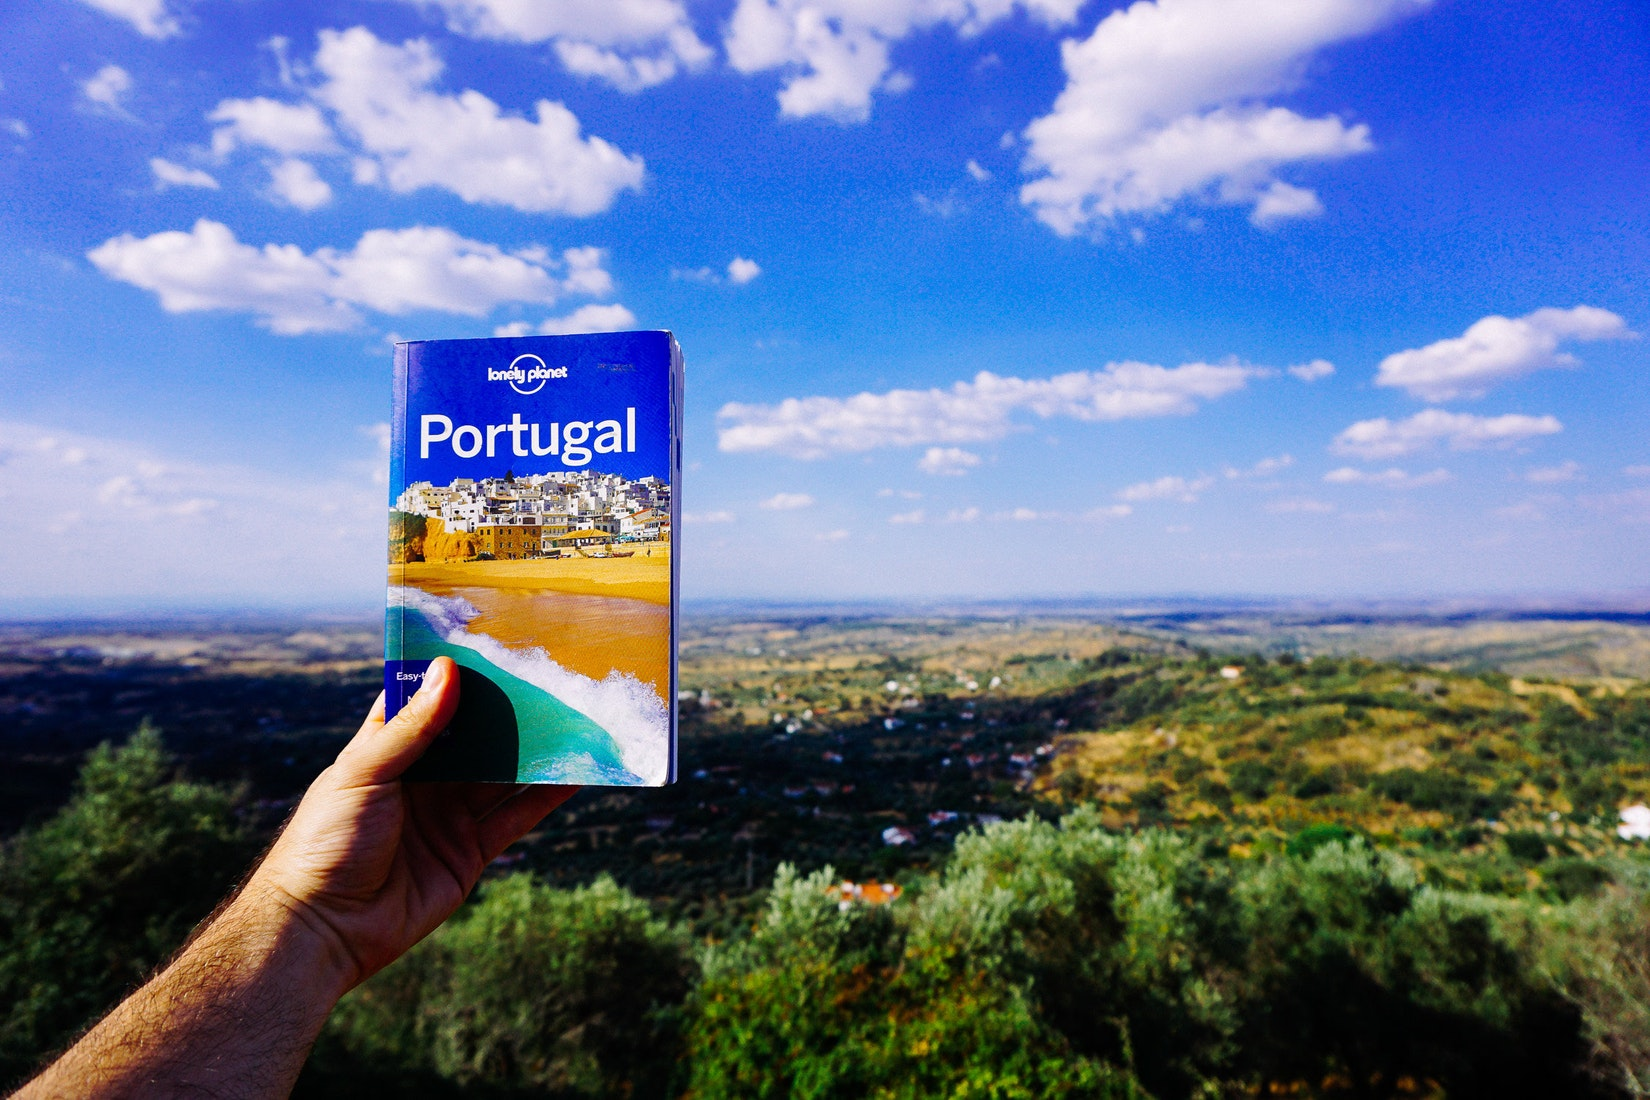 Using a book and a map to read directions for tourism in Portugal